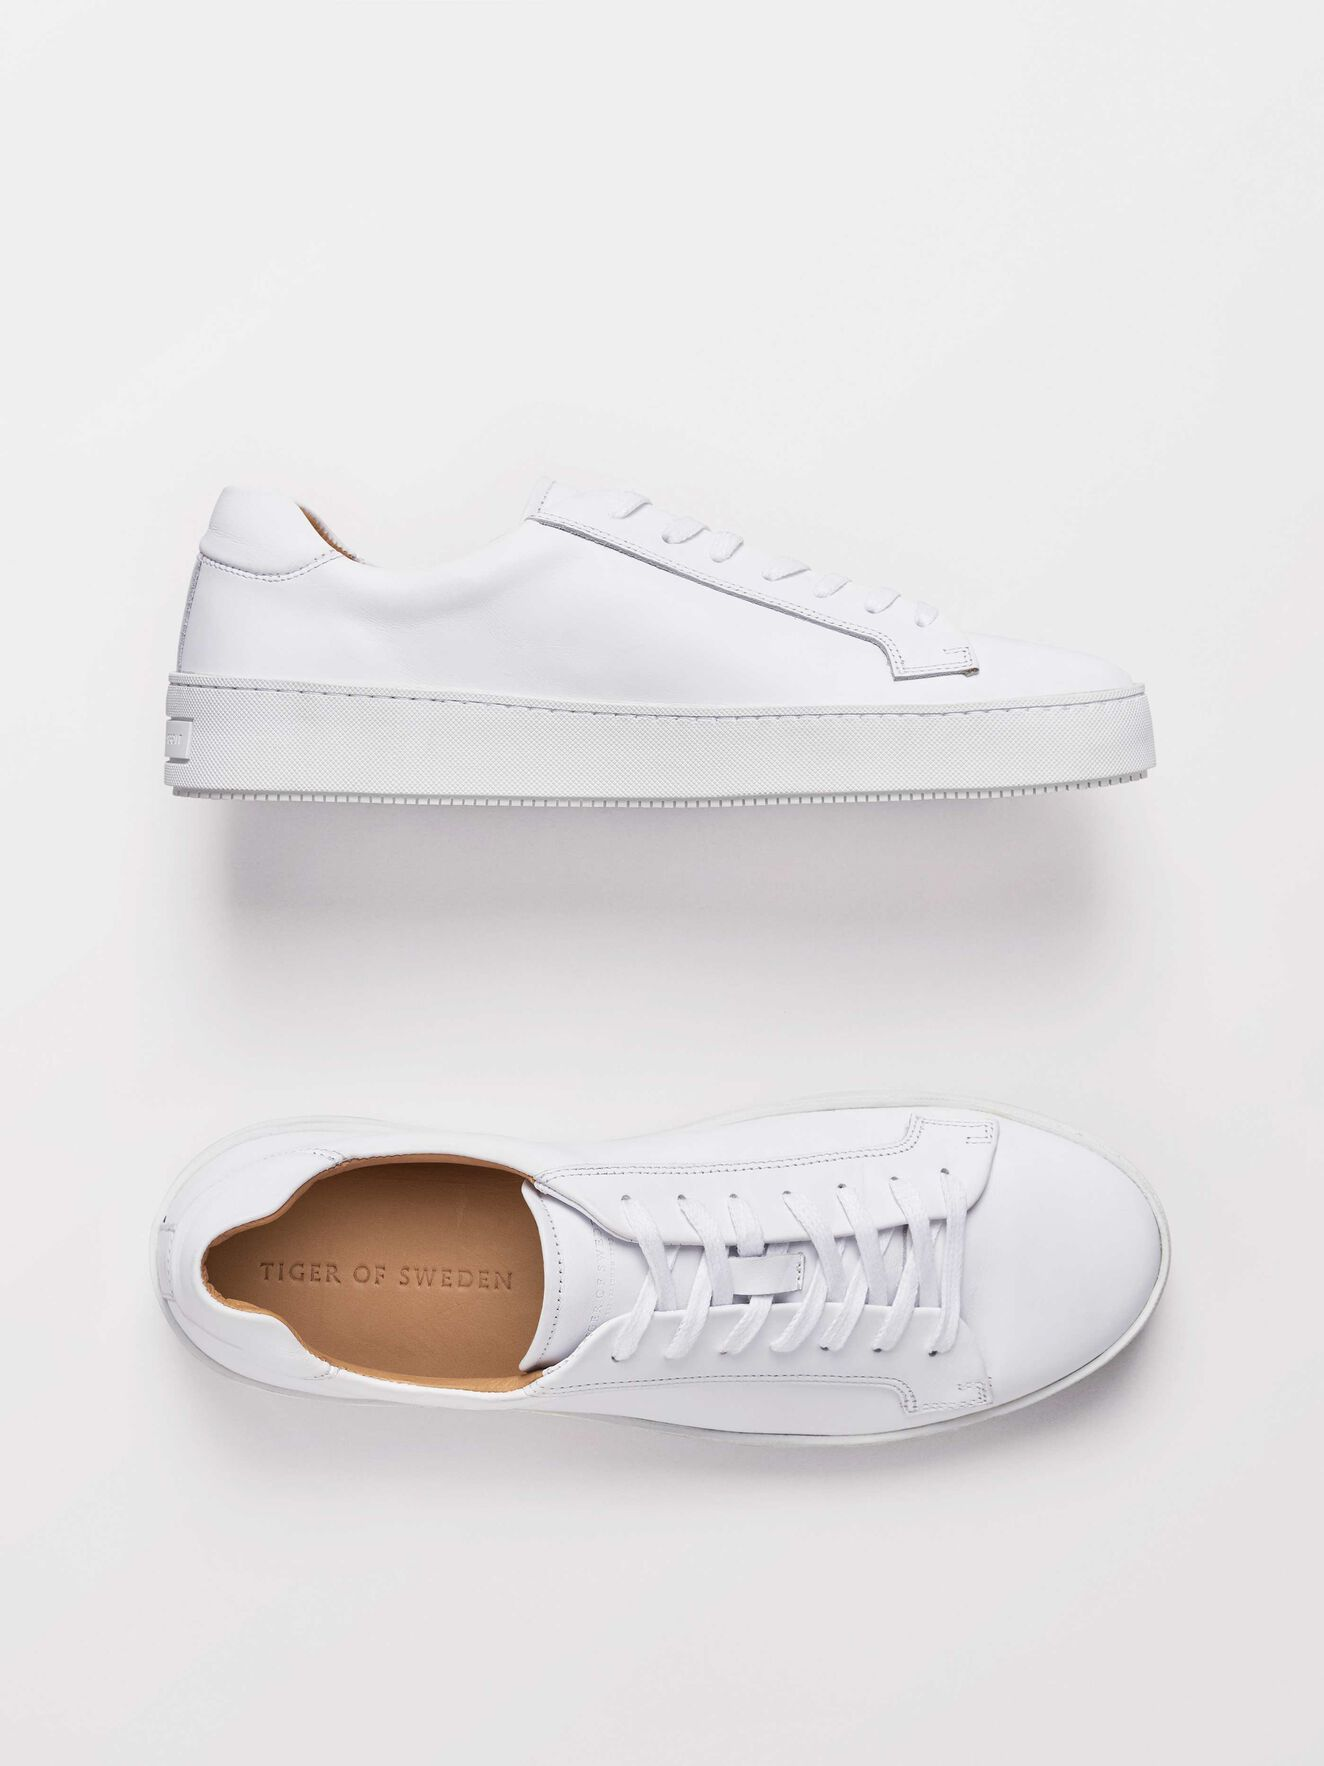 Salas Sneakers in White from Tiger of Sweden